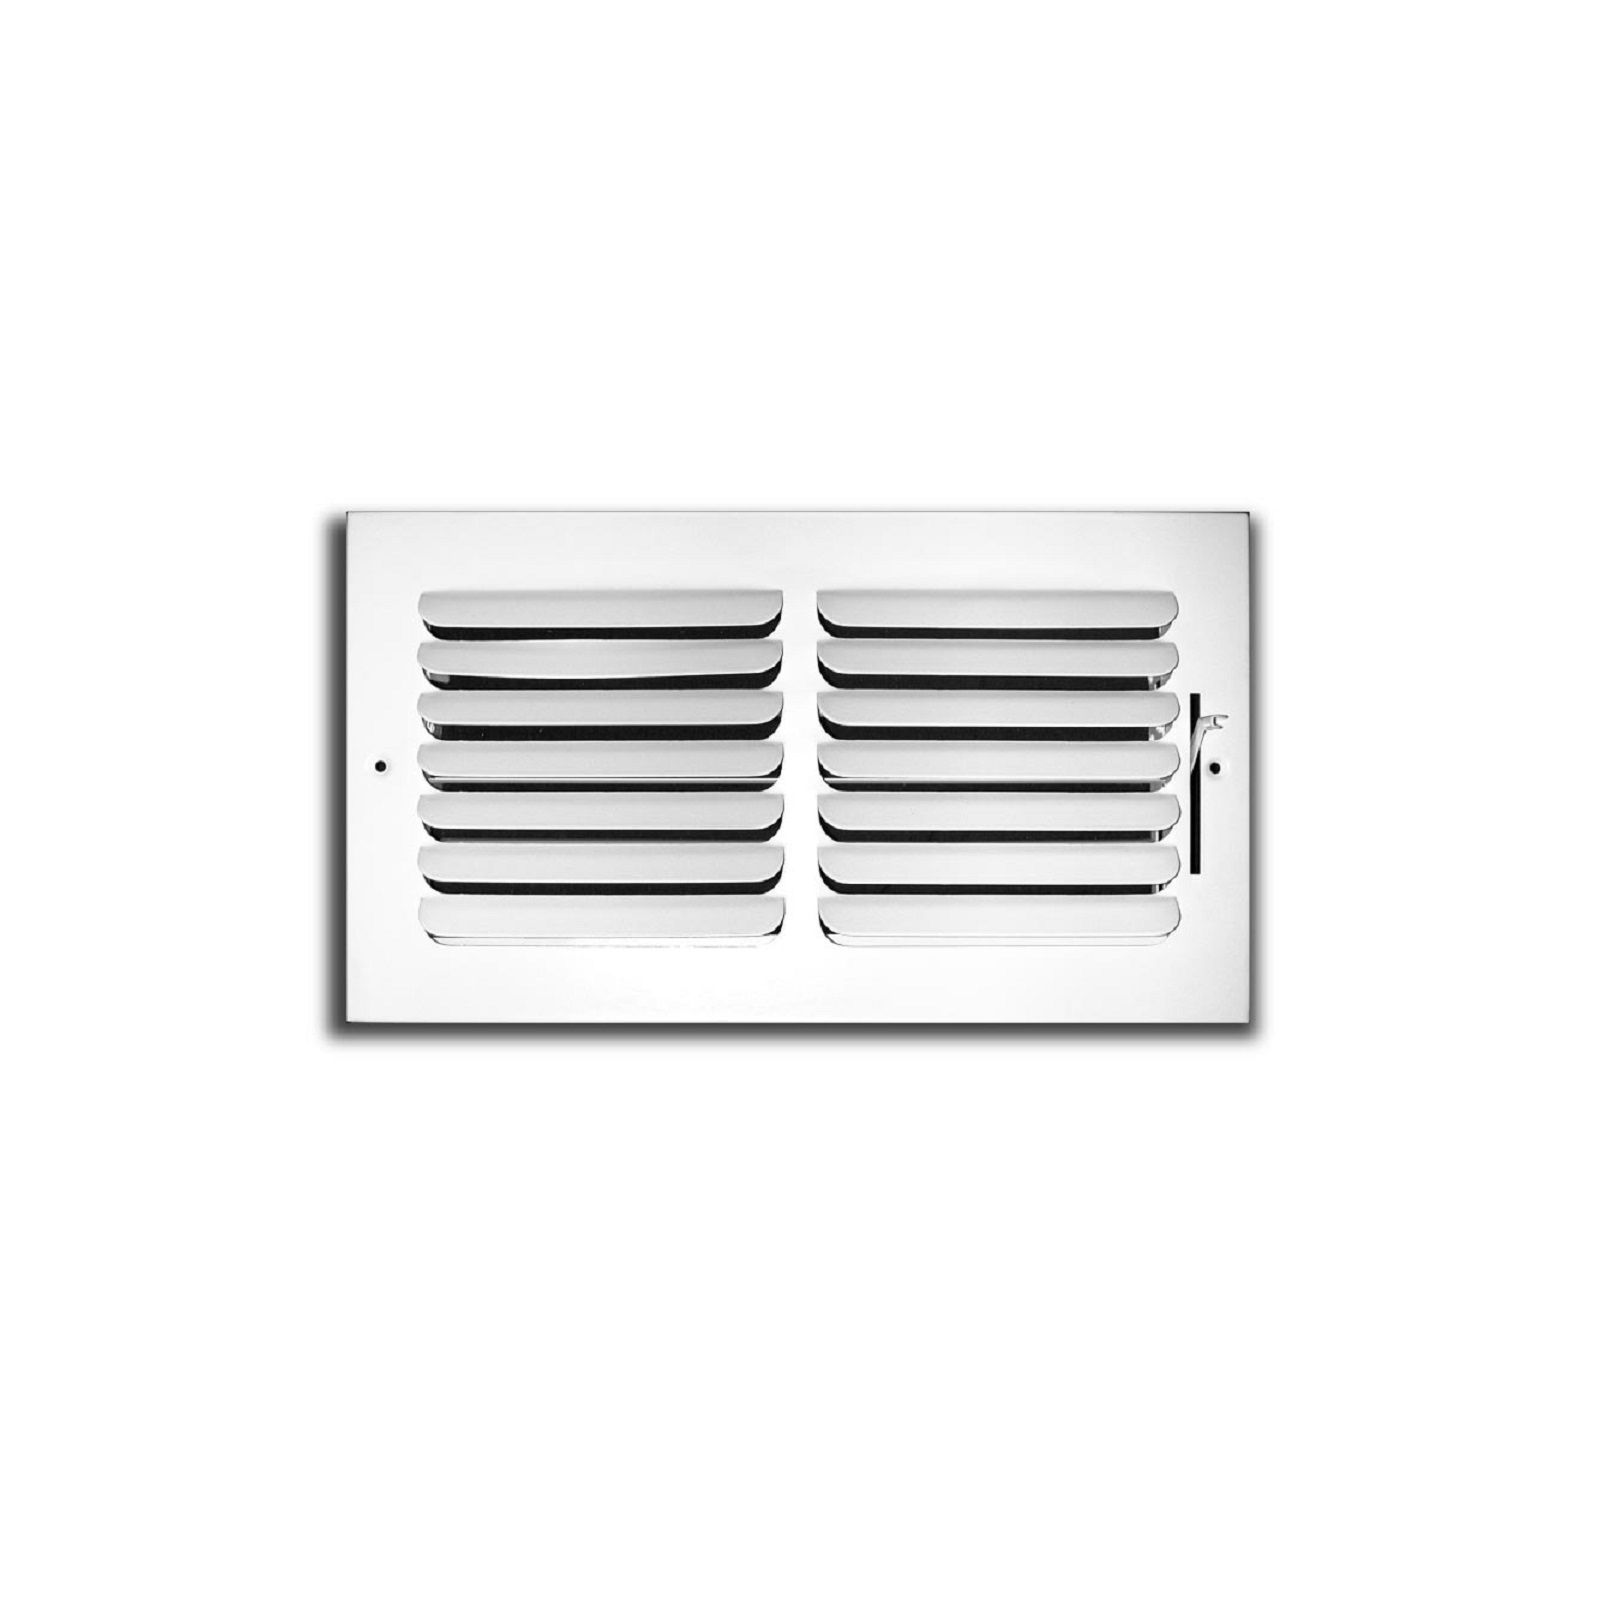 "TRUaire 401M 10X10 - Fixed Curved Blade Wall/Ceiling Register 401M With Multi Shutter Damper, 1-Way, White, 10"" X 10"""